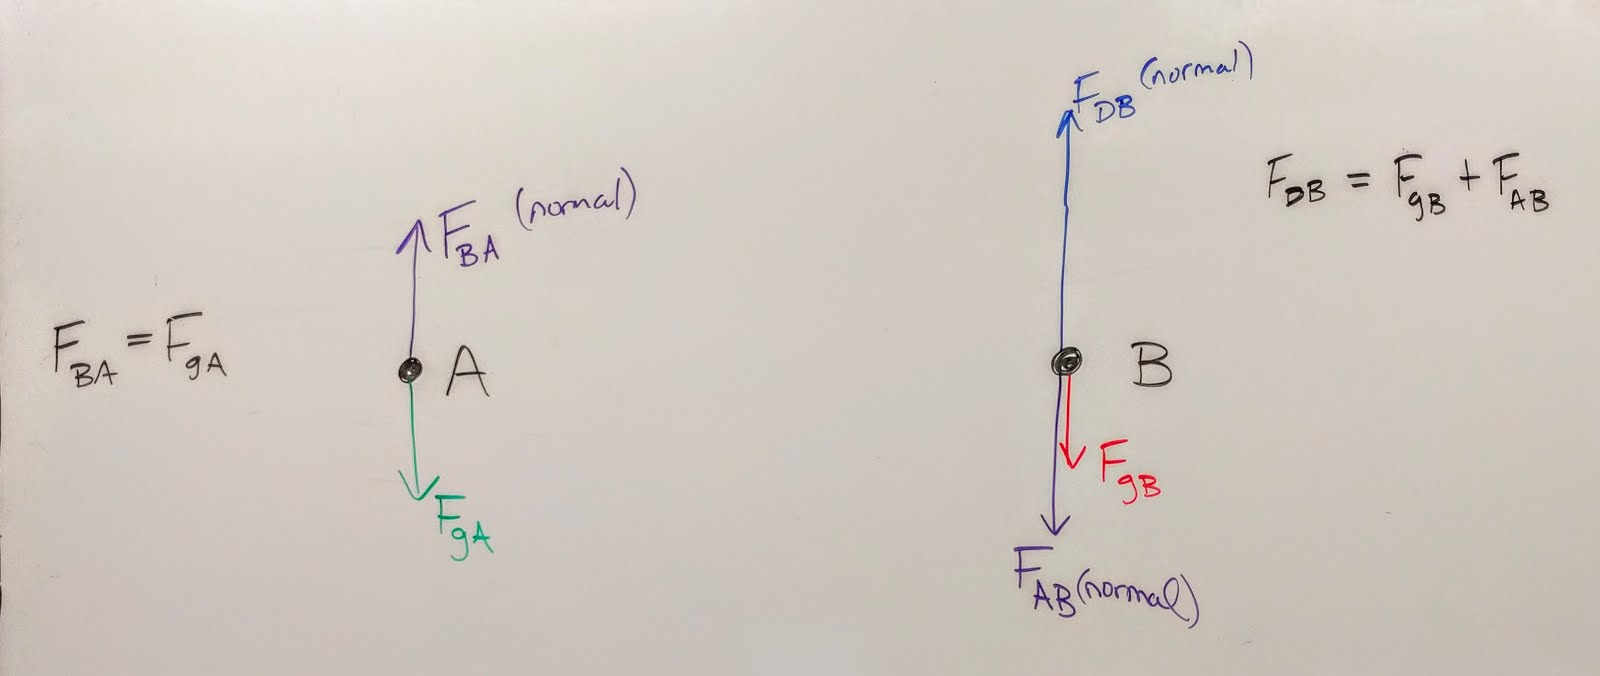 Volkenings Physics Classes Newtons Third Law Force Diagram 2jpg Here Are Some Sketches About Normal That Made It Up Onto The Board